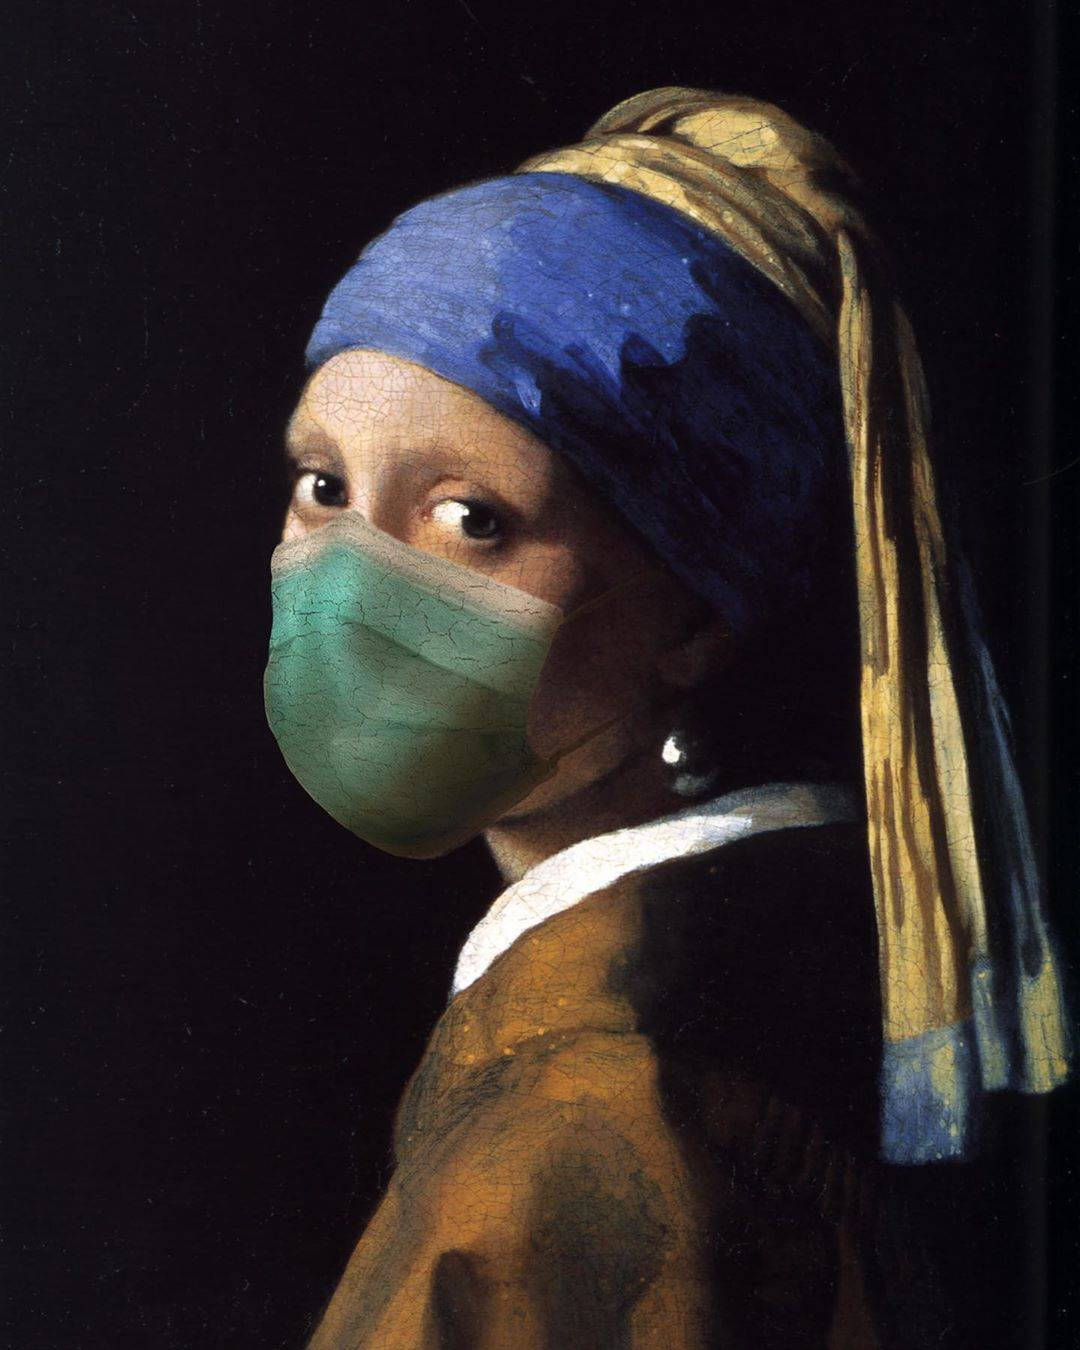 If these iconic artworks were painted during the Covid-19 pandemic